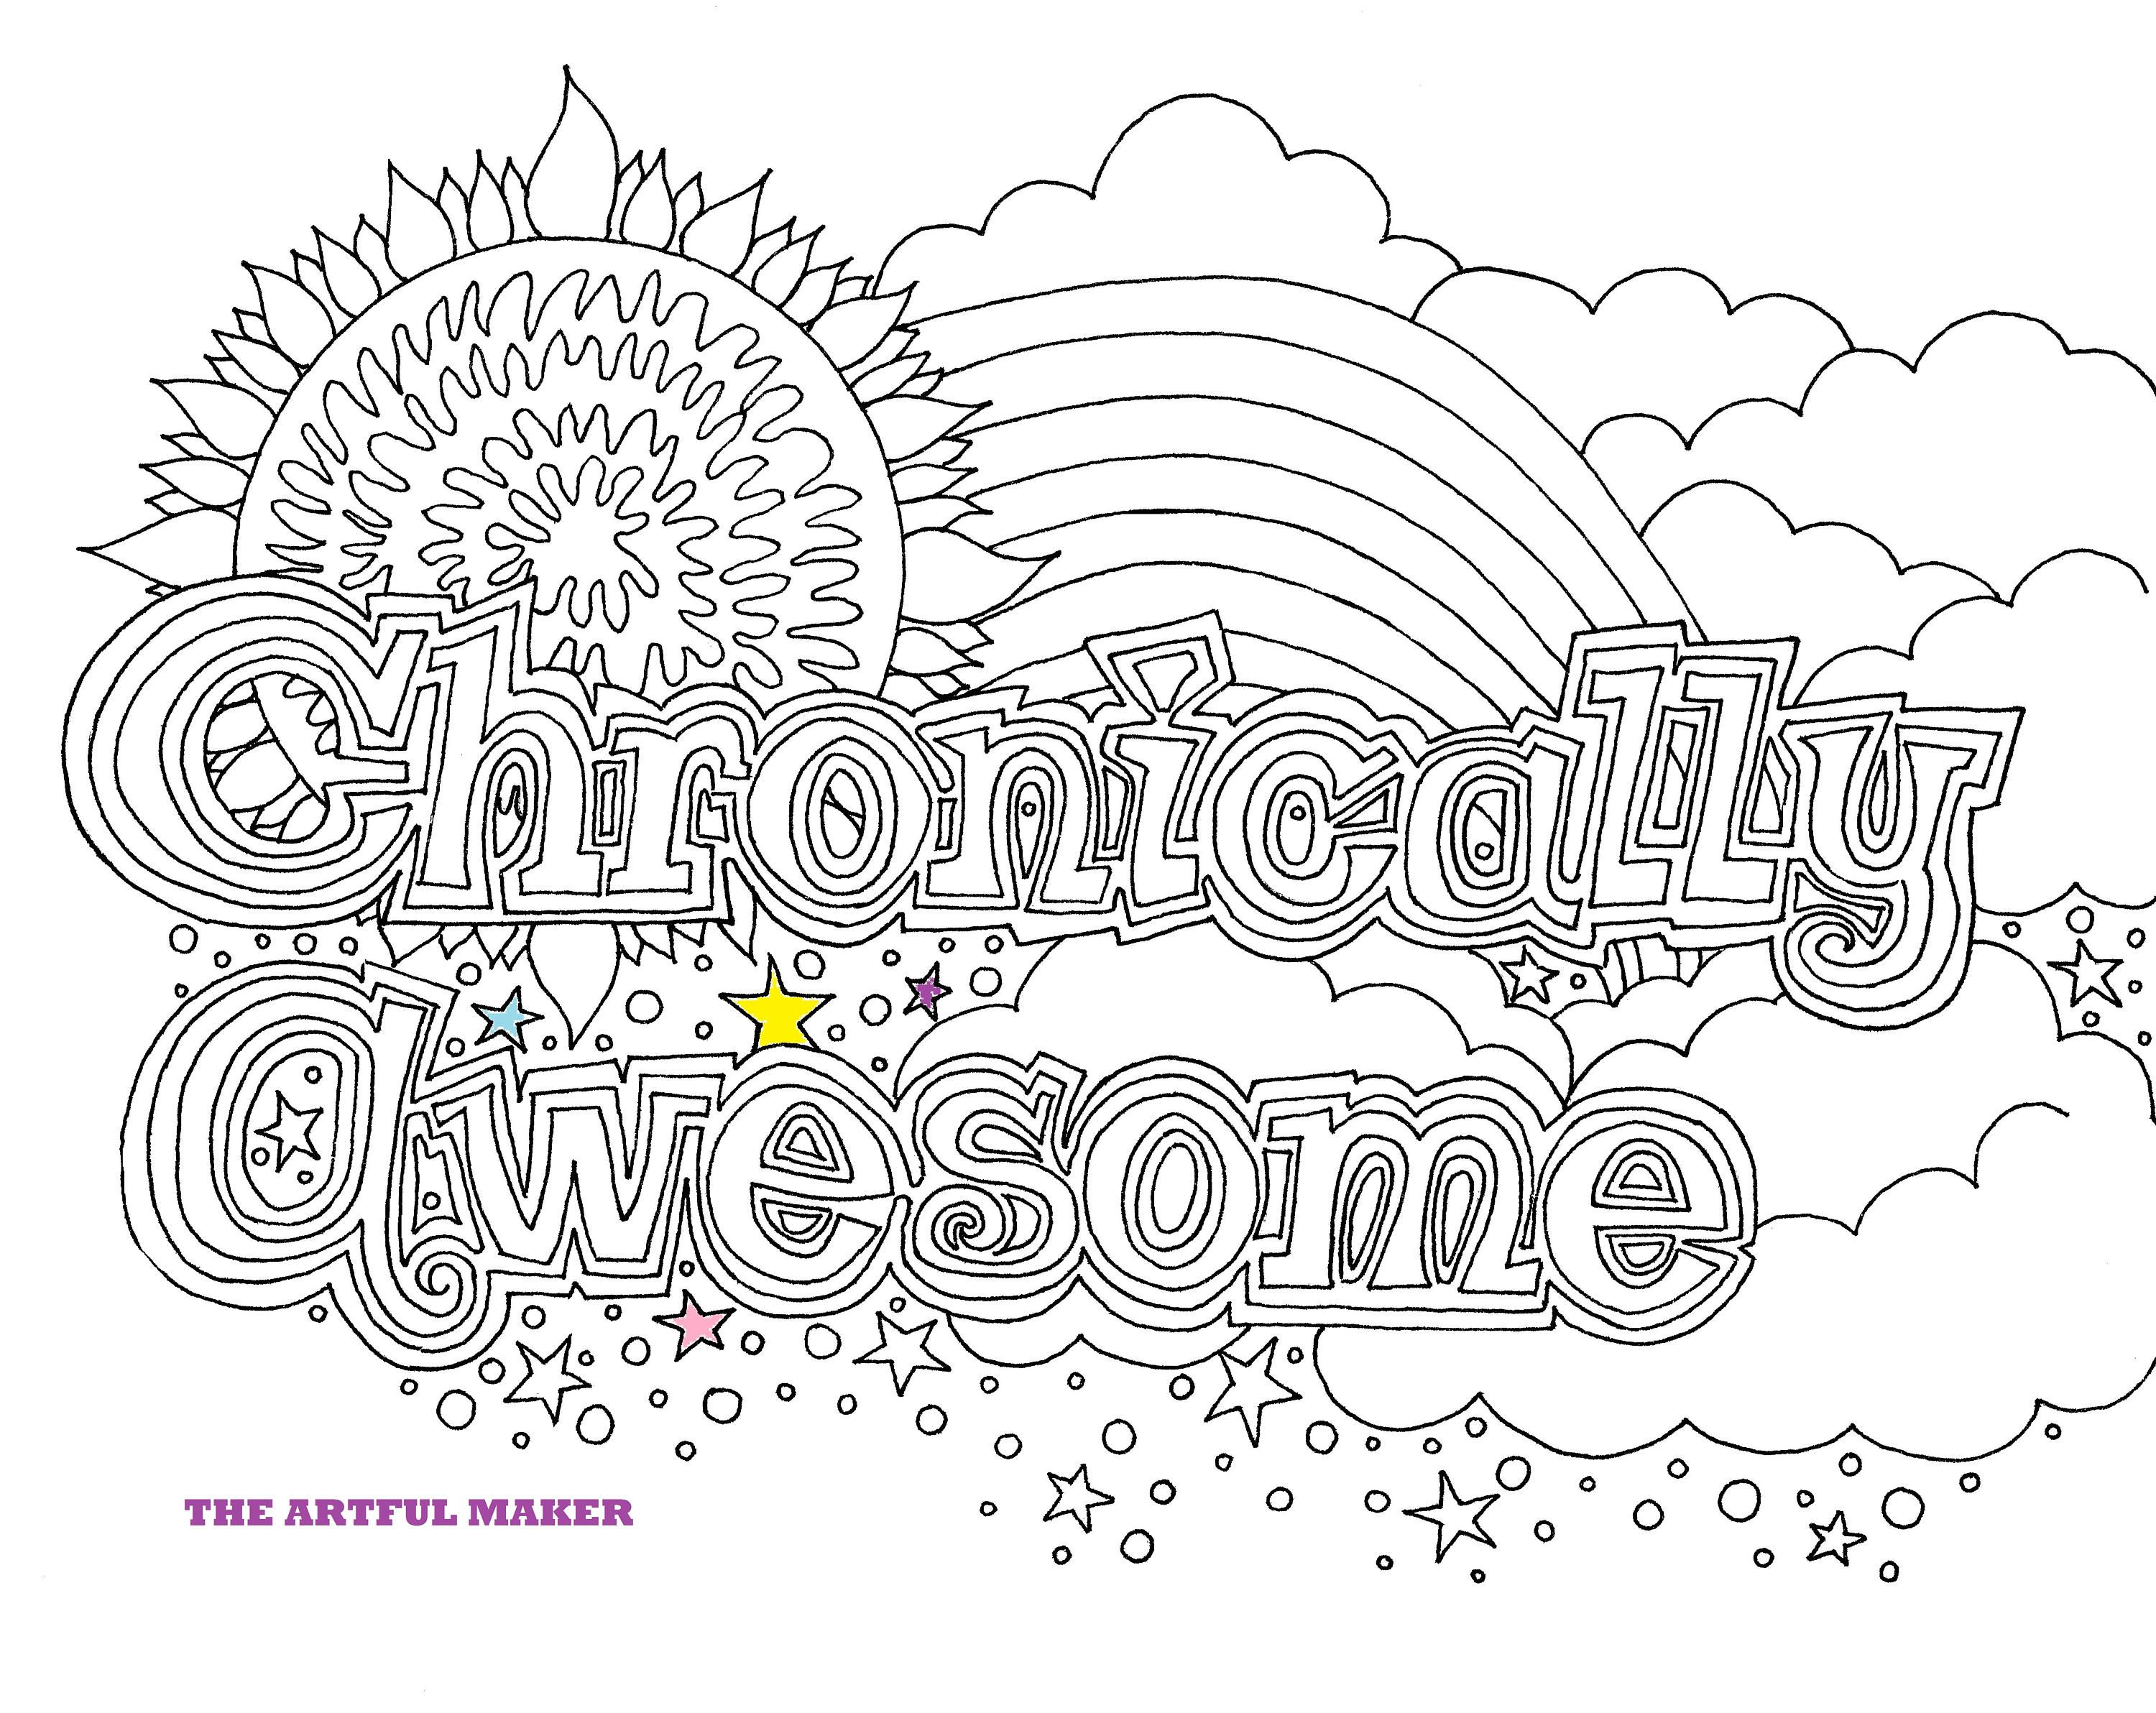 Chronically Awesome Printable Coloring Page By The Artful Maker Love Coloring Pages Coloring Pages Coloring Pages Inspirational